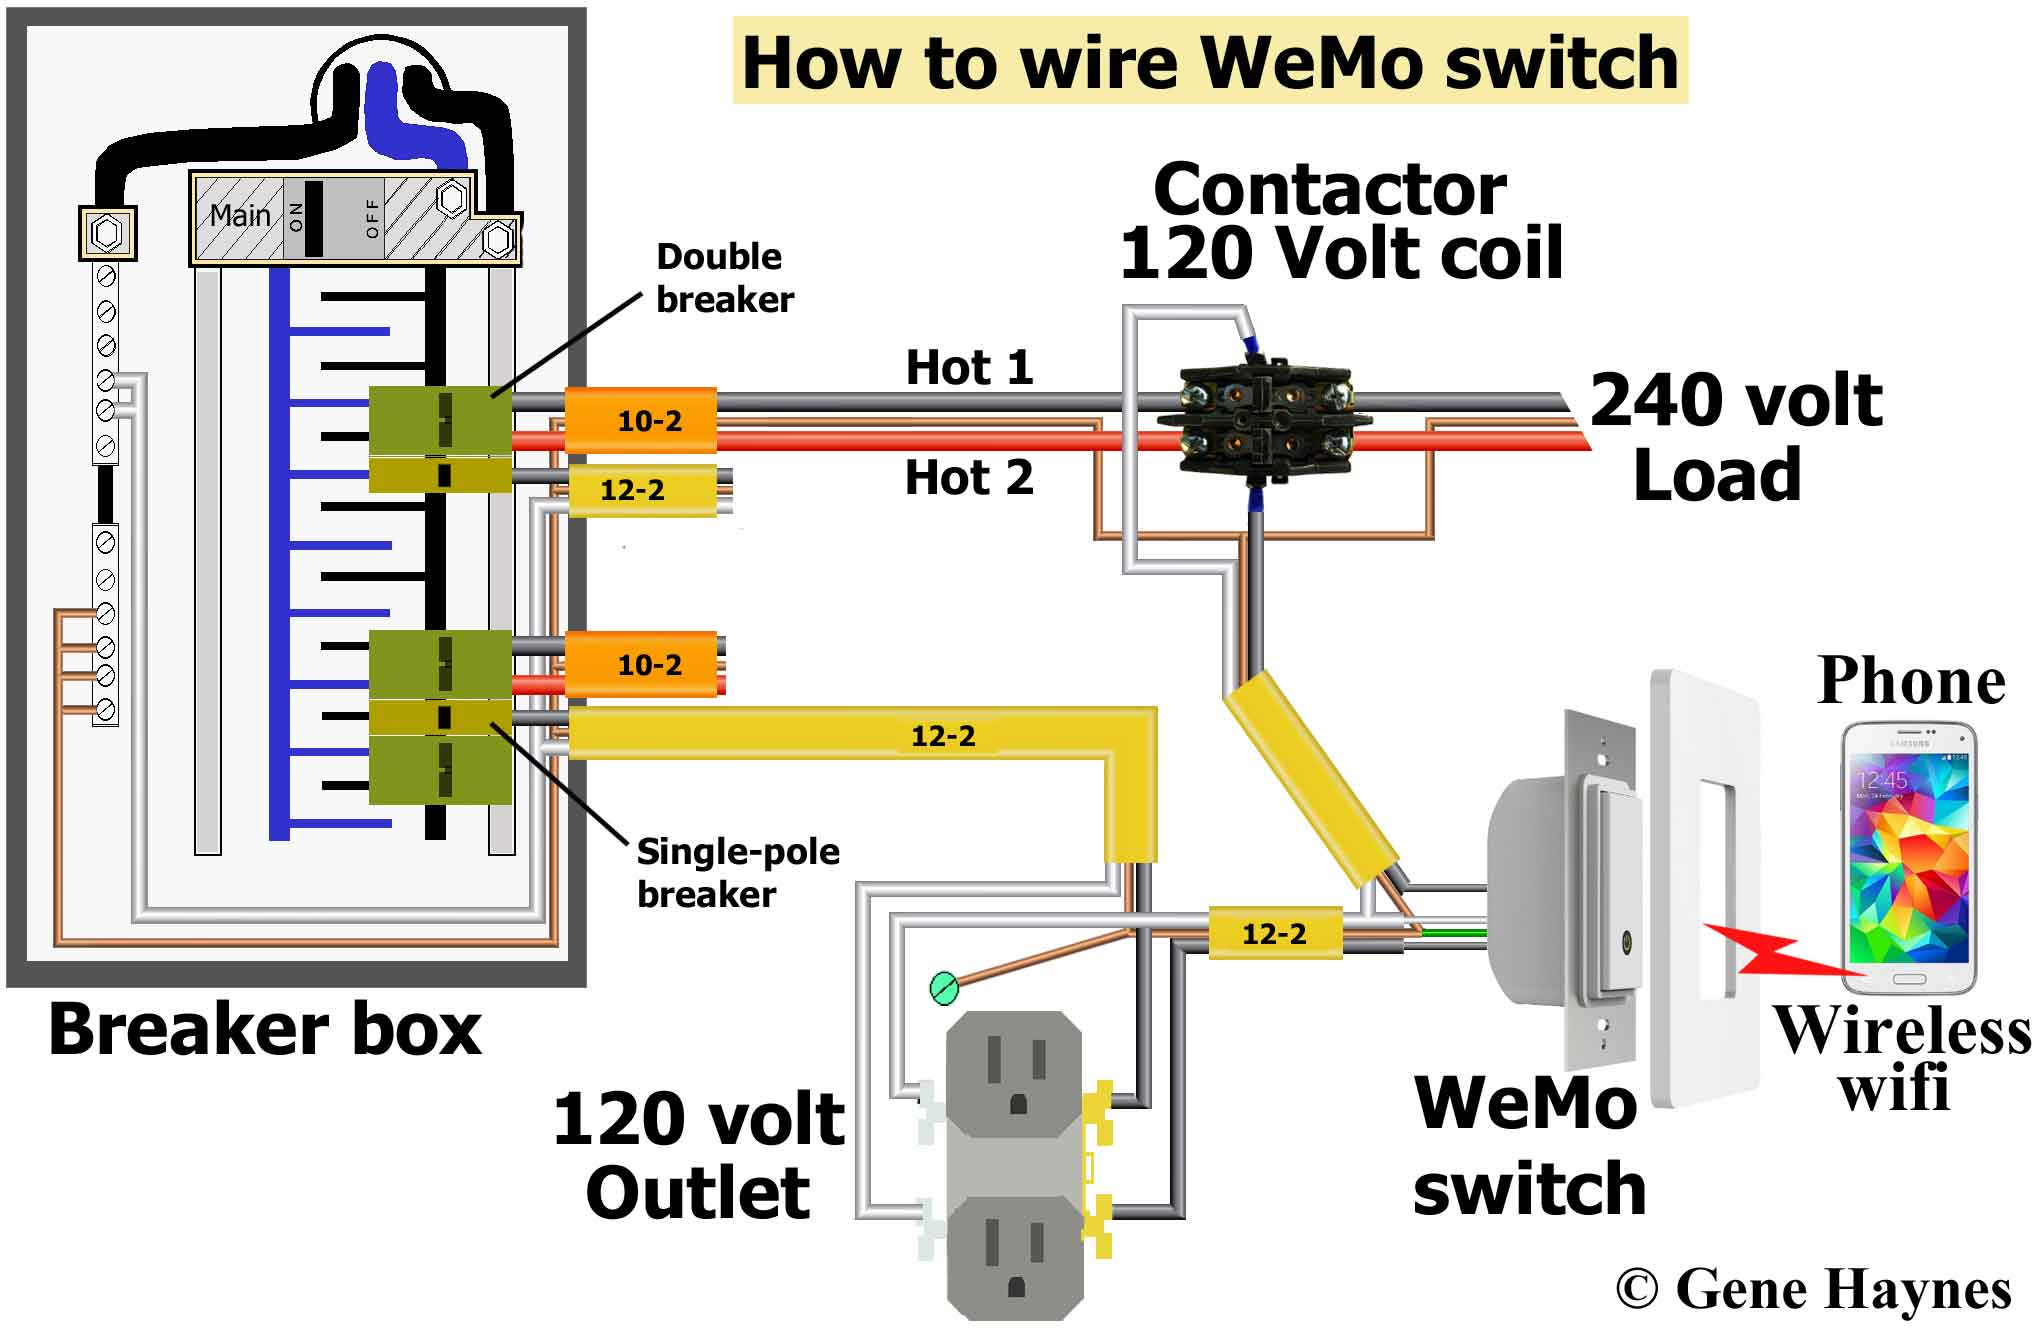 WeMo switch wiring illustration 3 control 240 volt with wemo volt free contact wiring diagram at aneh.co